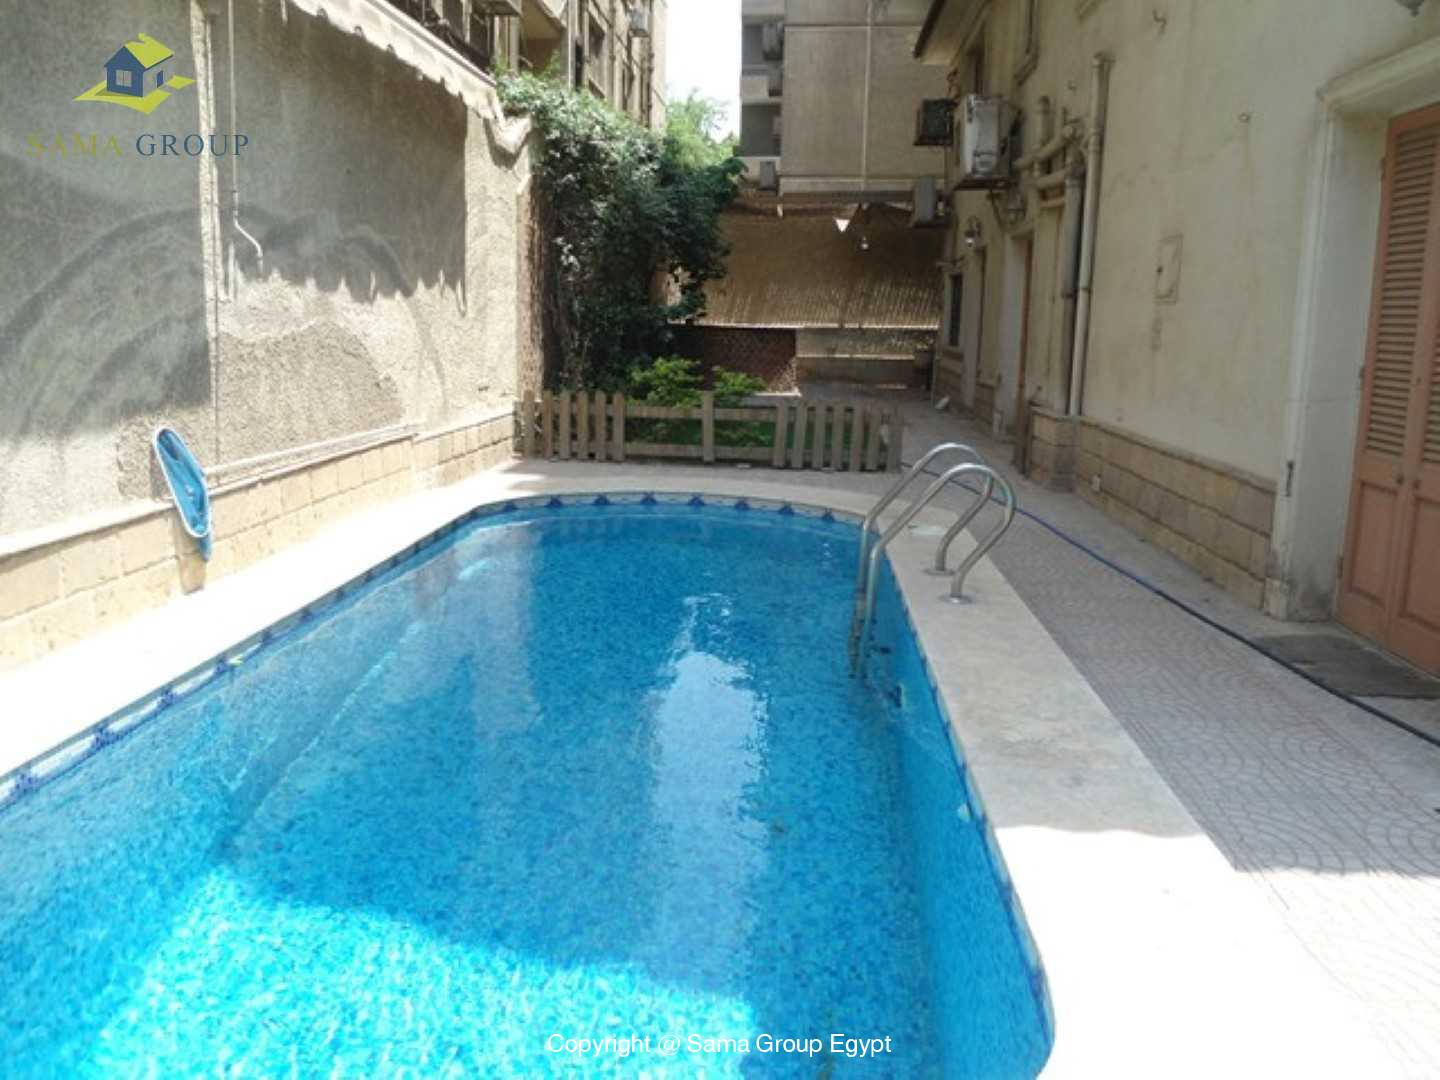 Furnished  Ground Floor Duplex With Pool For Rent In Maadi